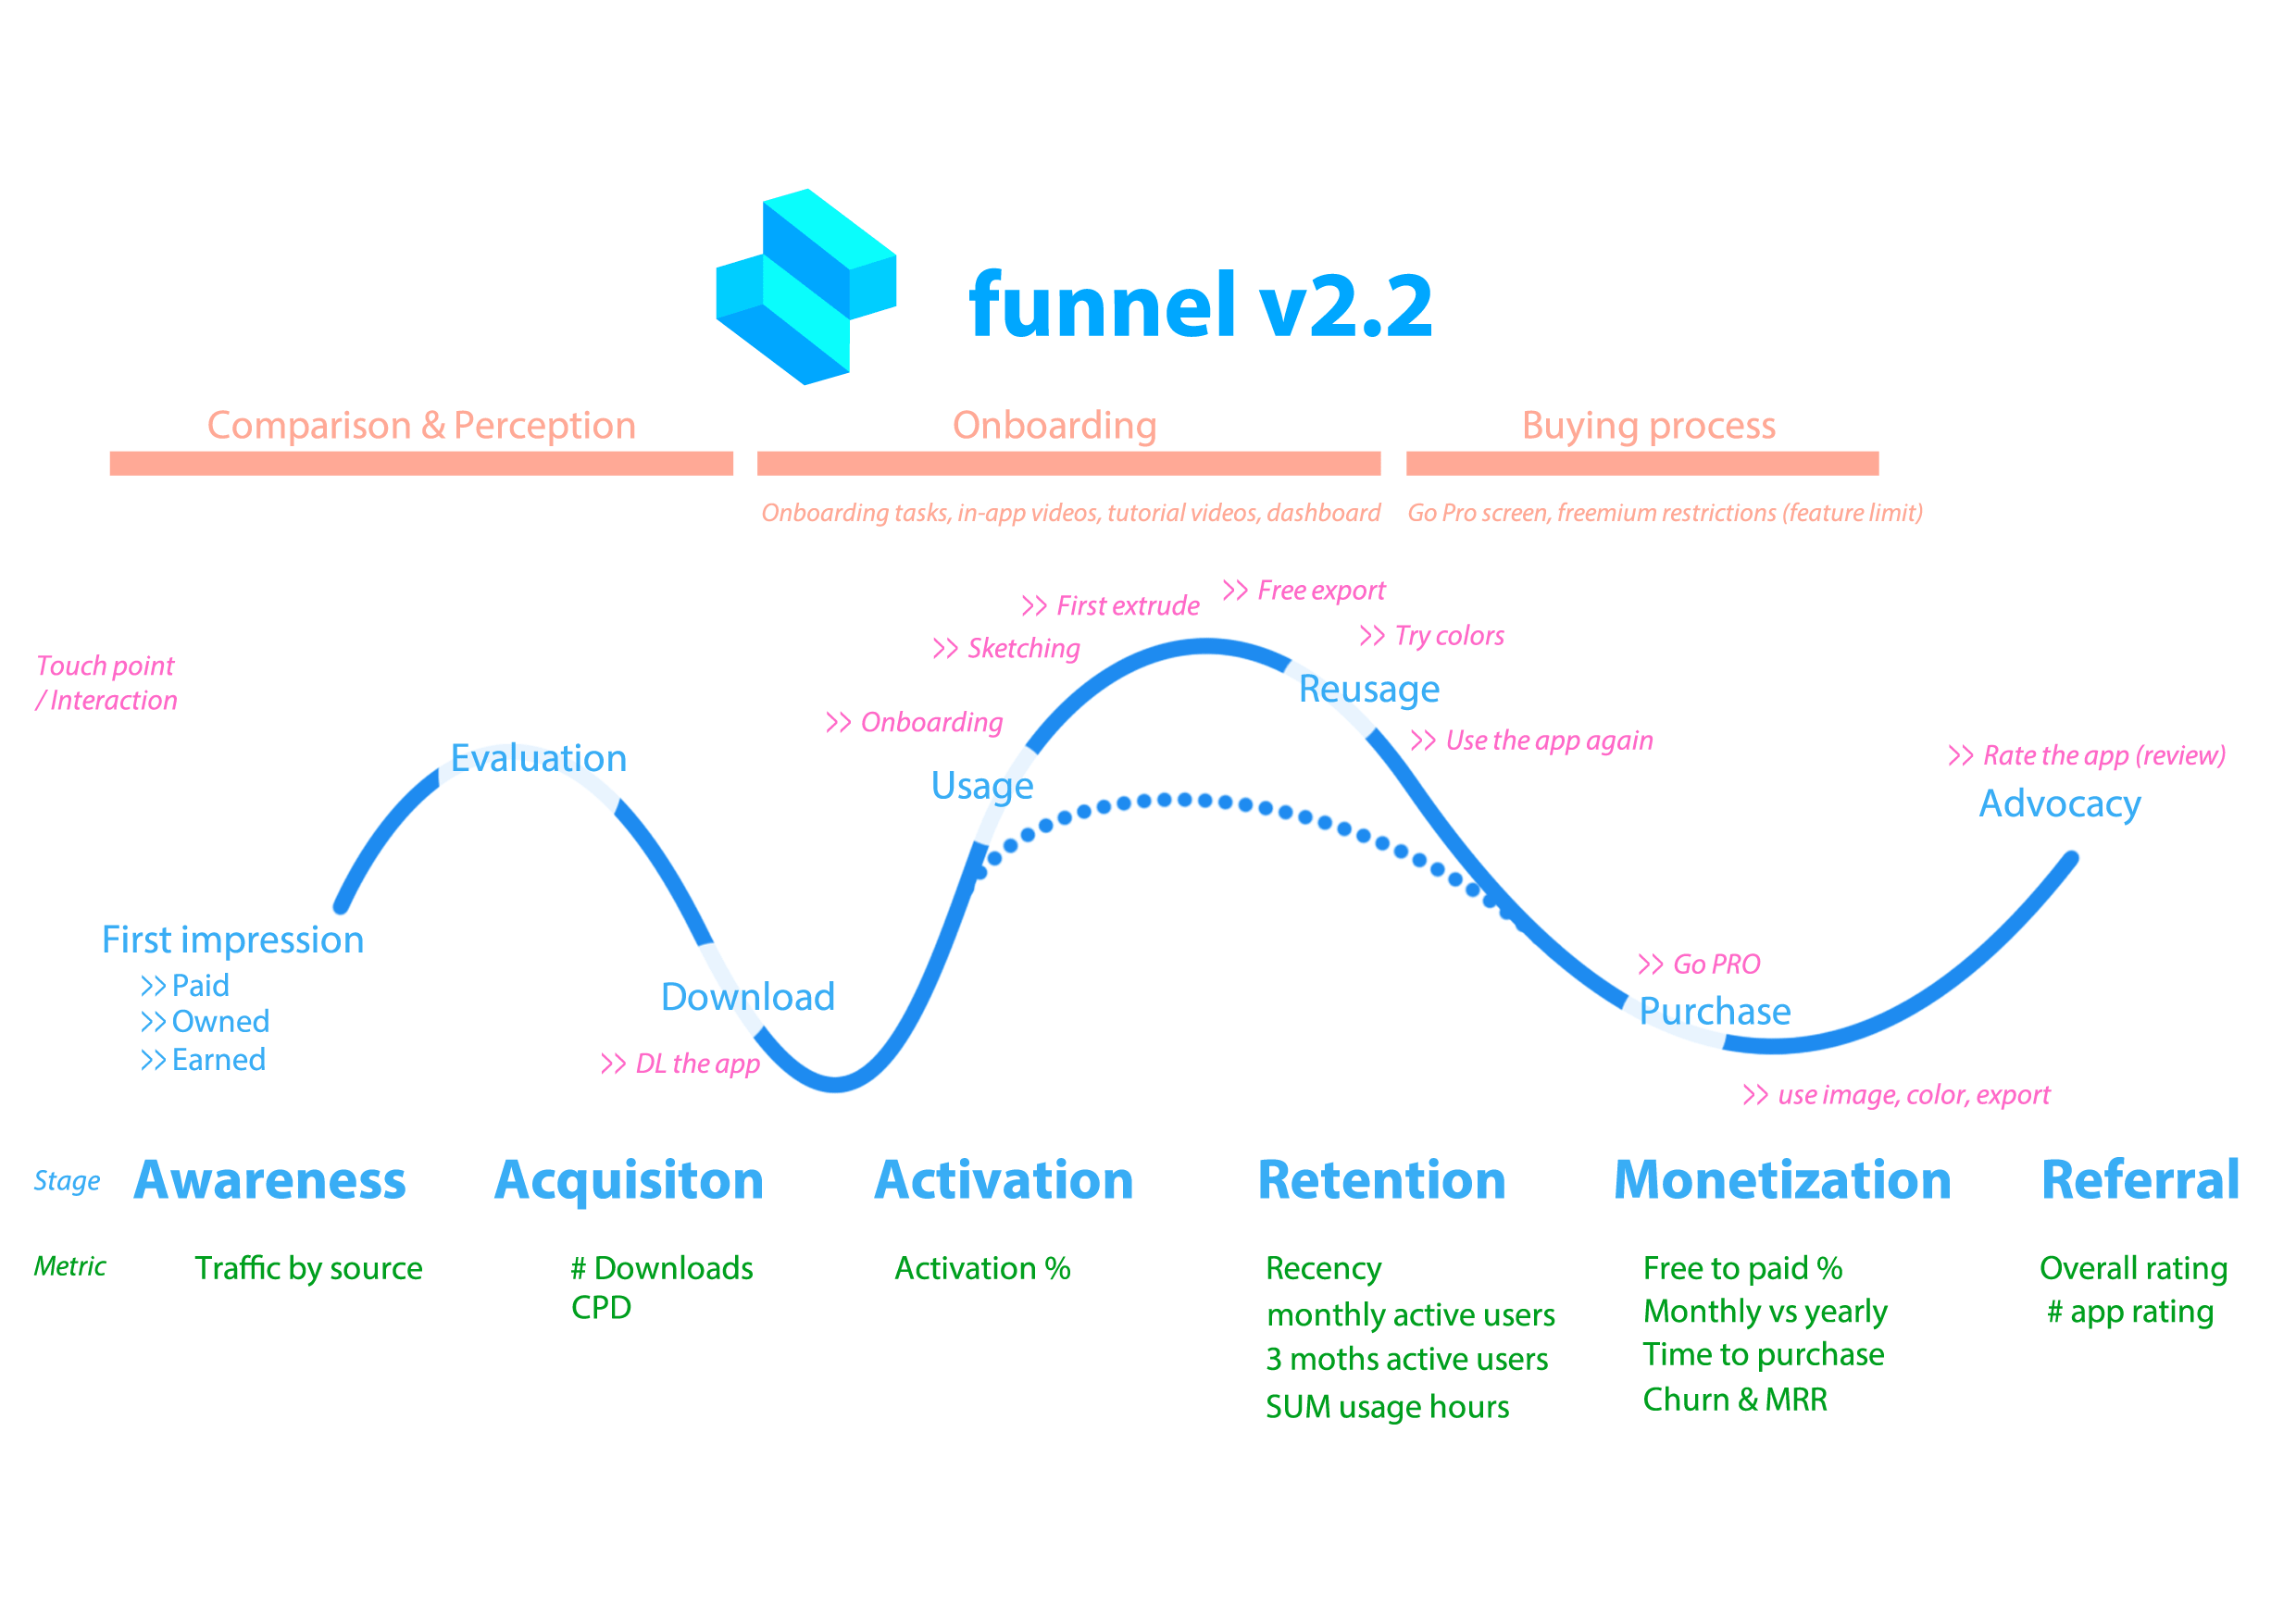 Shapr3D's funnel